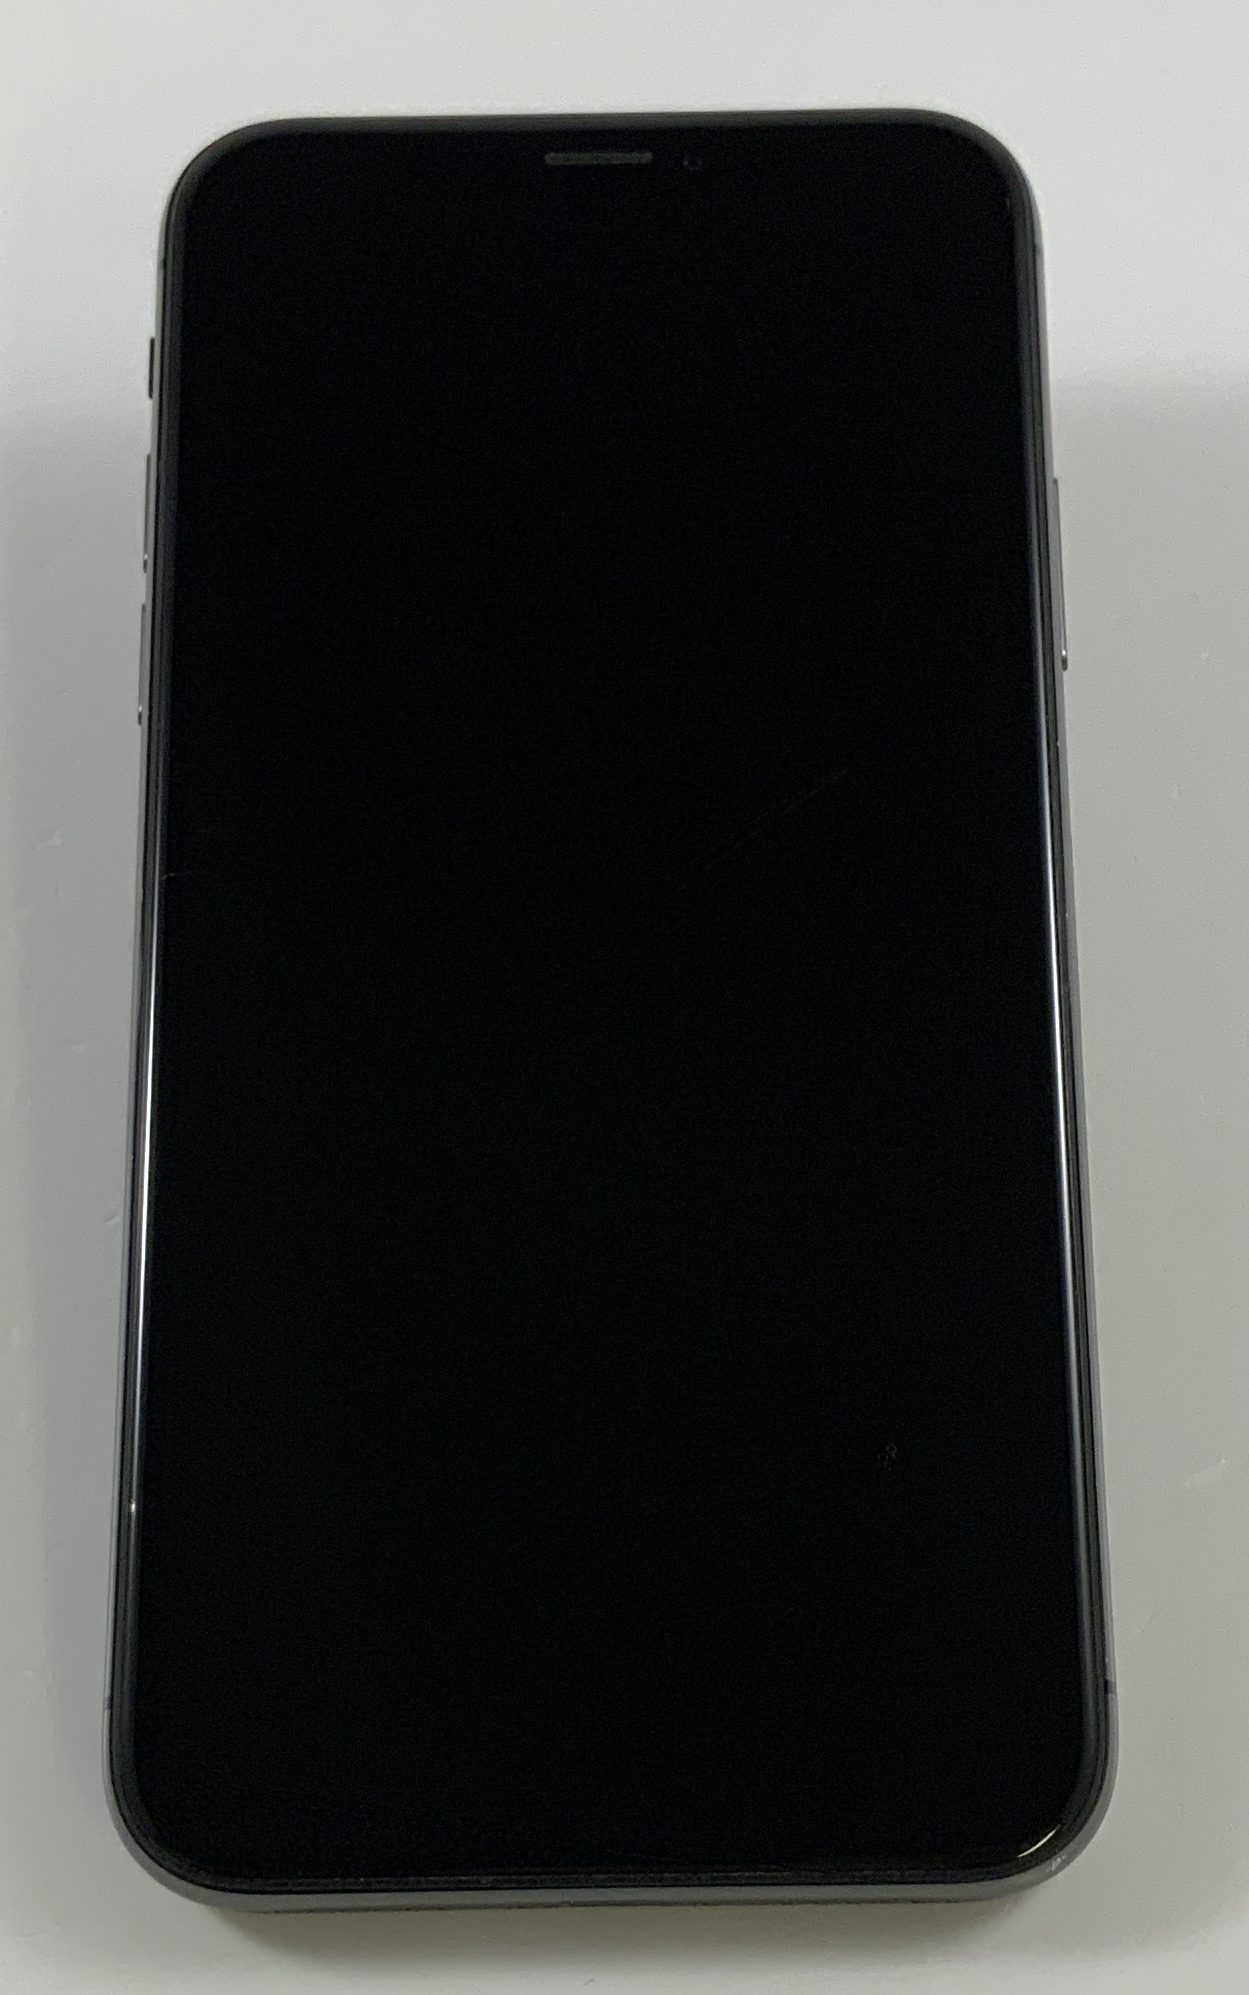 iPhone X 64GB, 64GB, Space Gray, Afbeelding 1